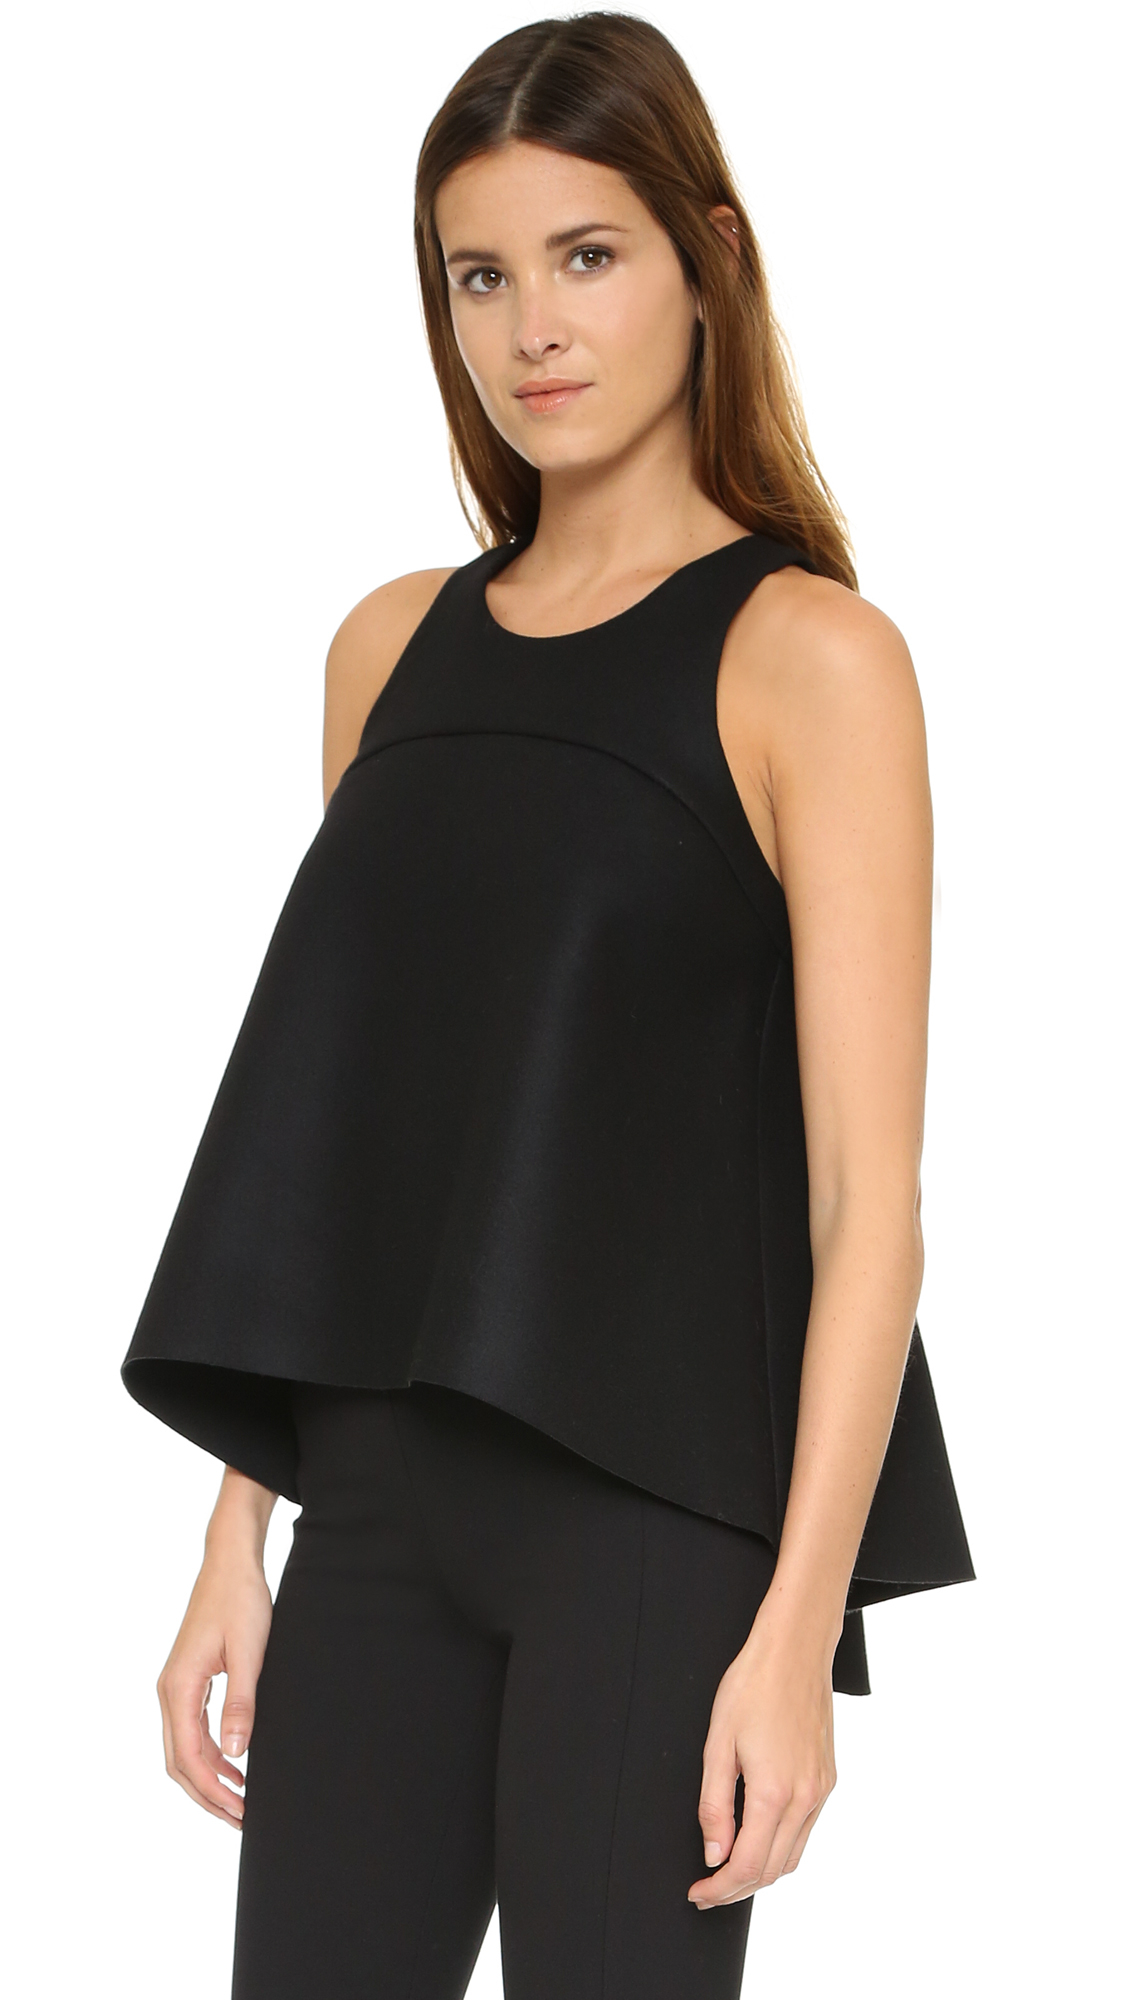 d3ebc5f7fc743 Lyst - MILLY Trapeze Top - Black in Black